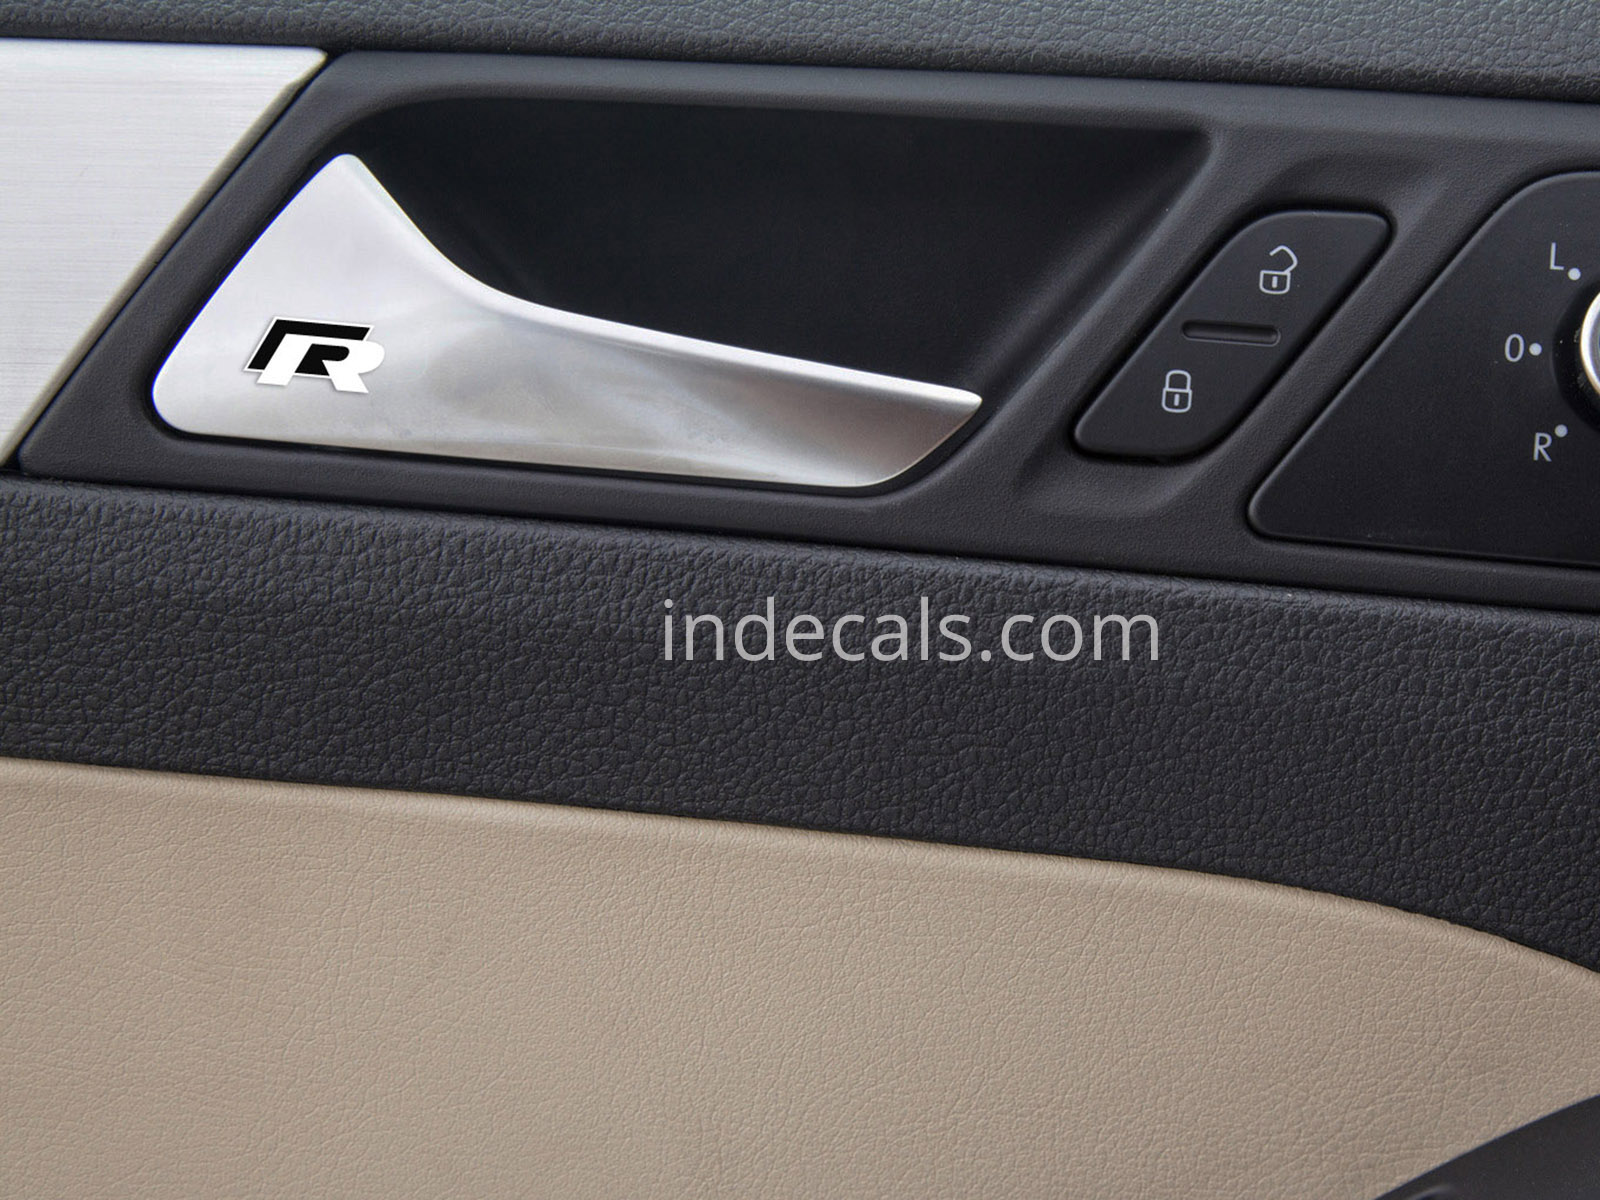 R Line Stickers For Your Volkswagen Car Indecalscom